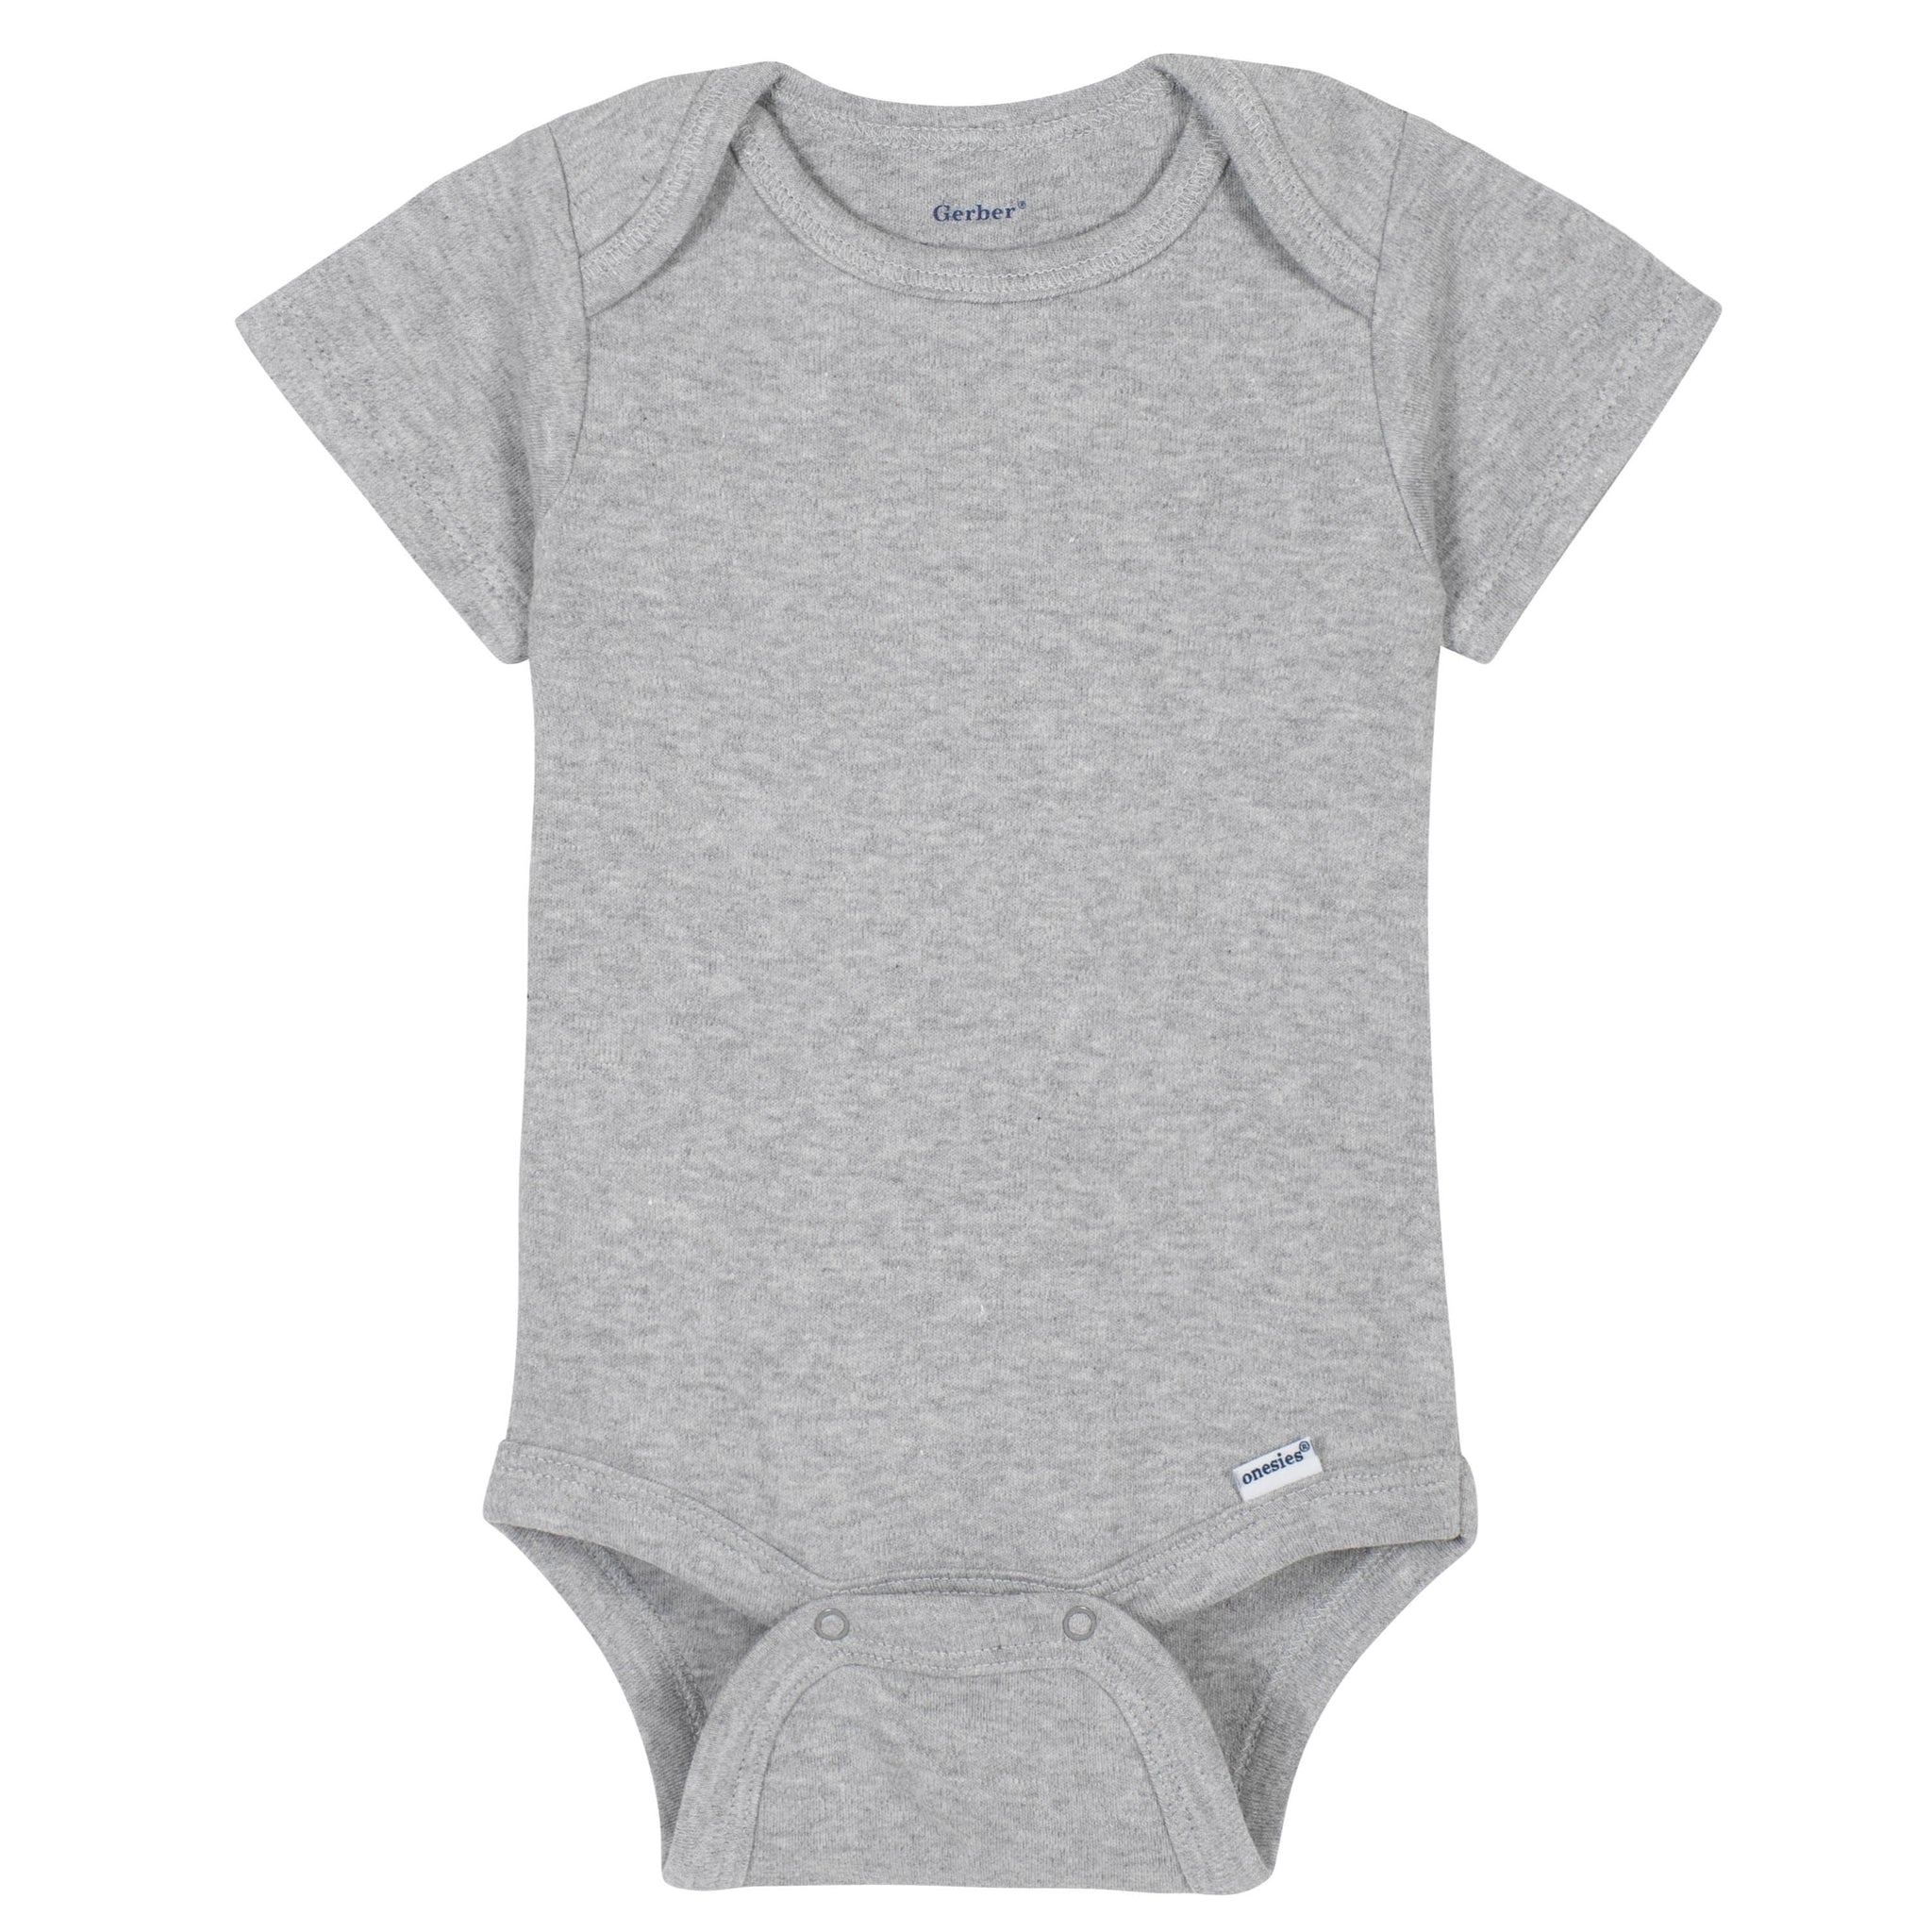 Premium Short Sleeve Onesies® Bodysuit in Light Grey-Gerber Childrenswear Wholesale